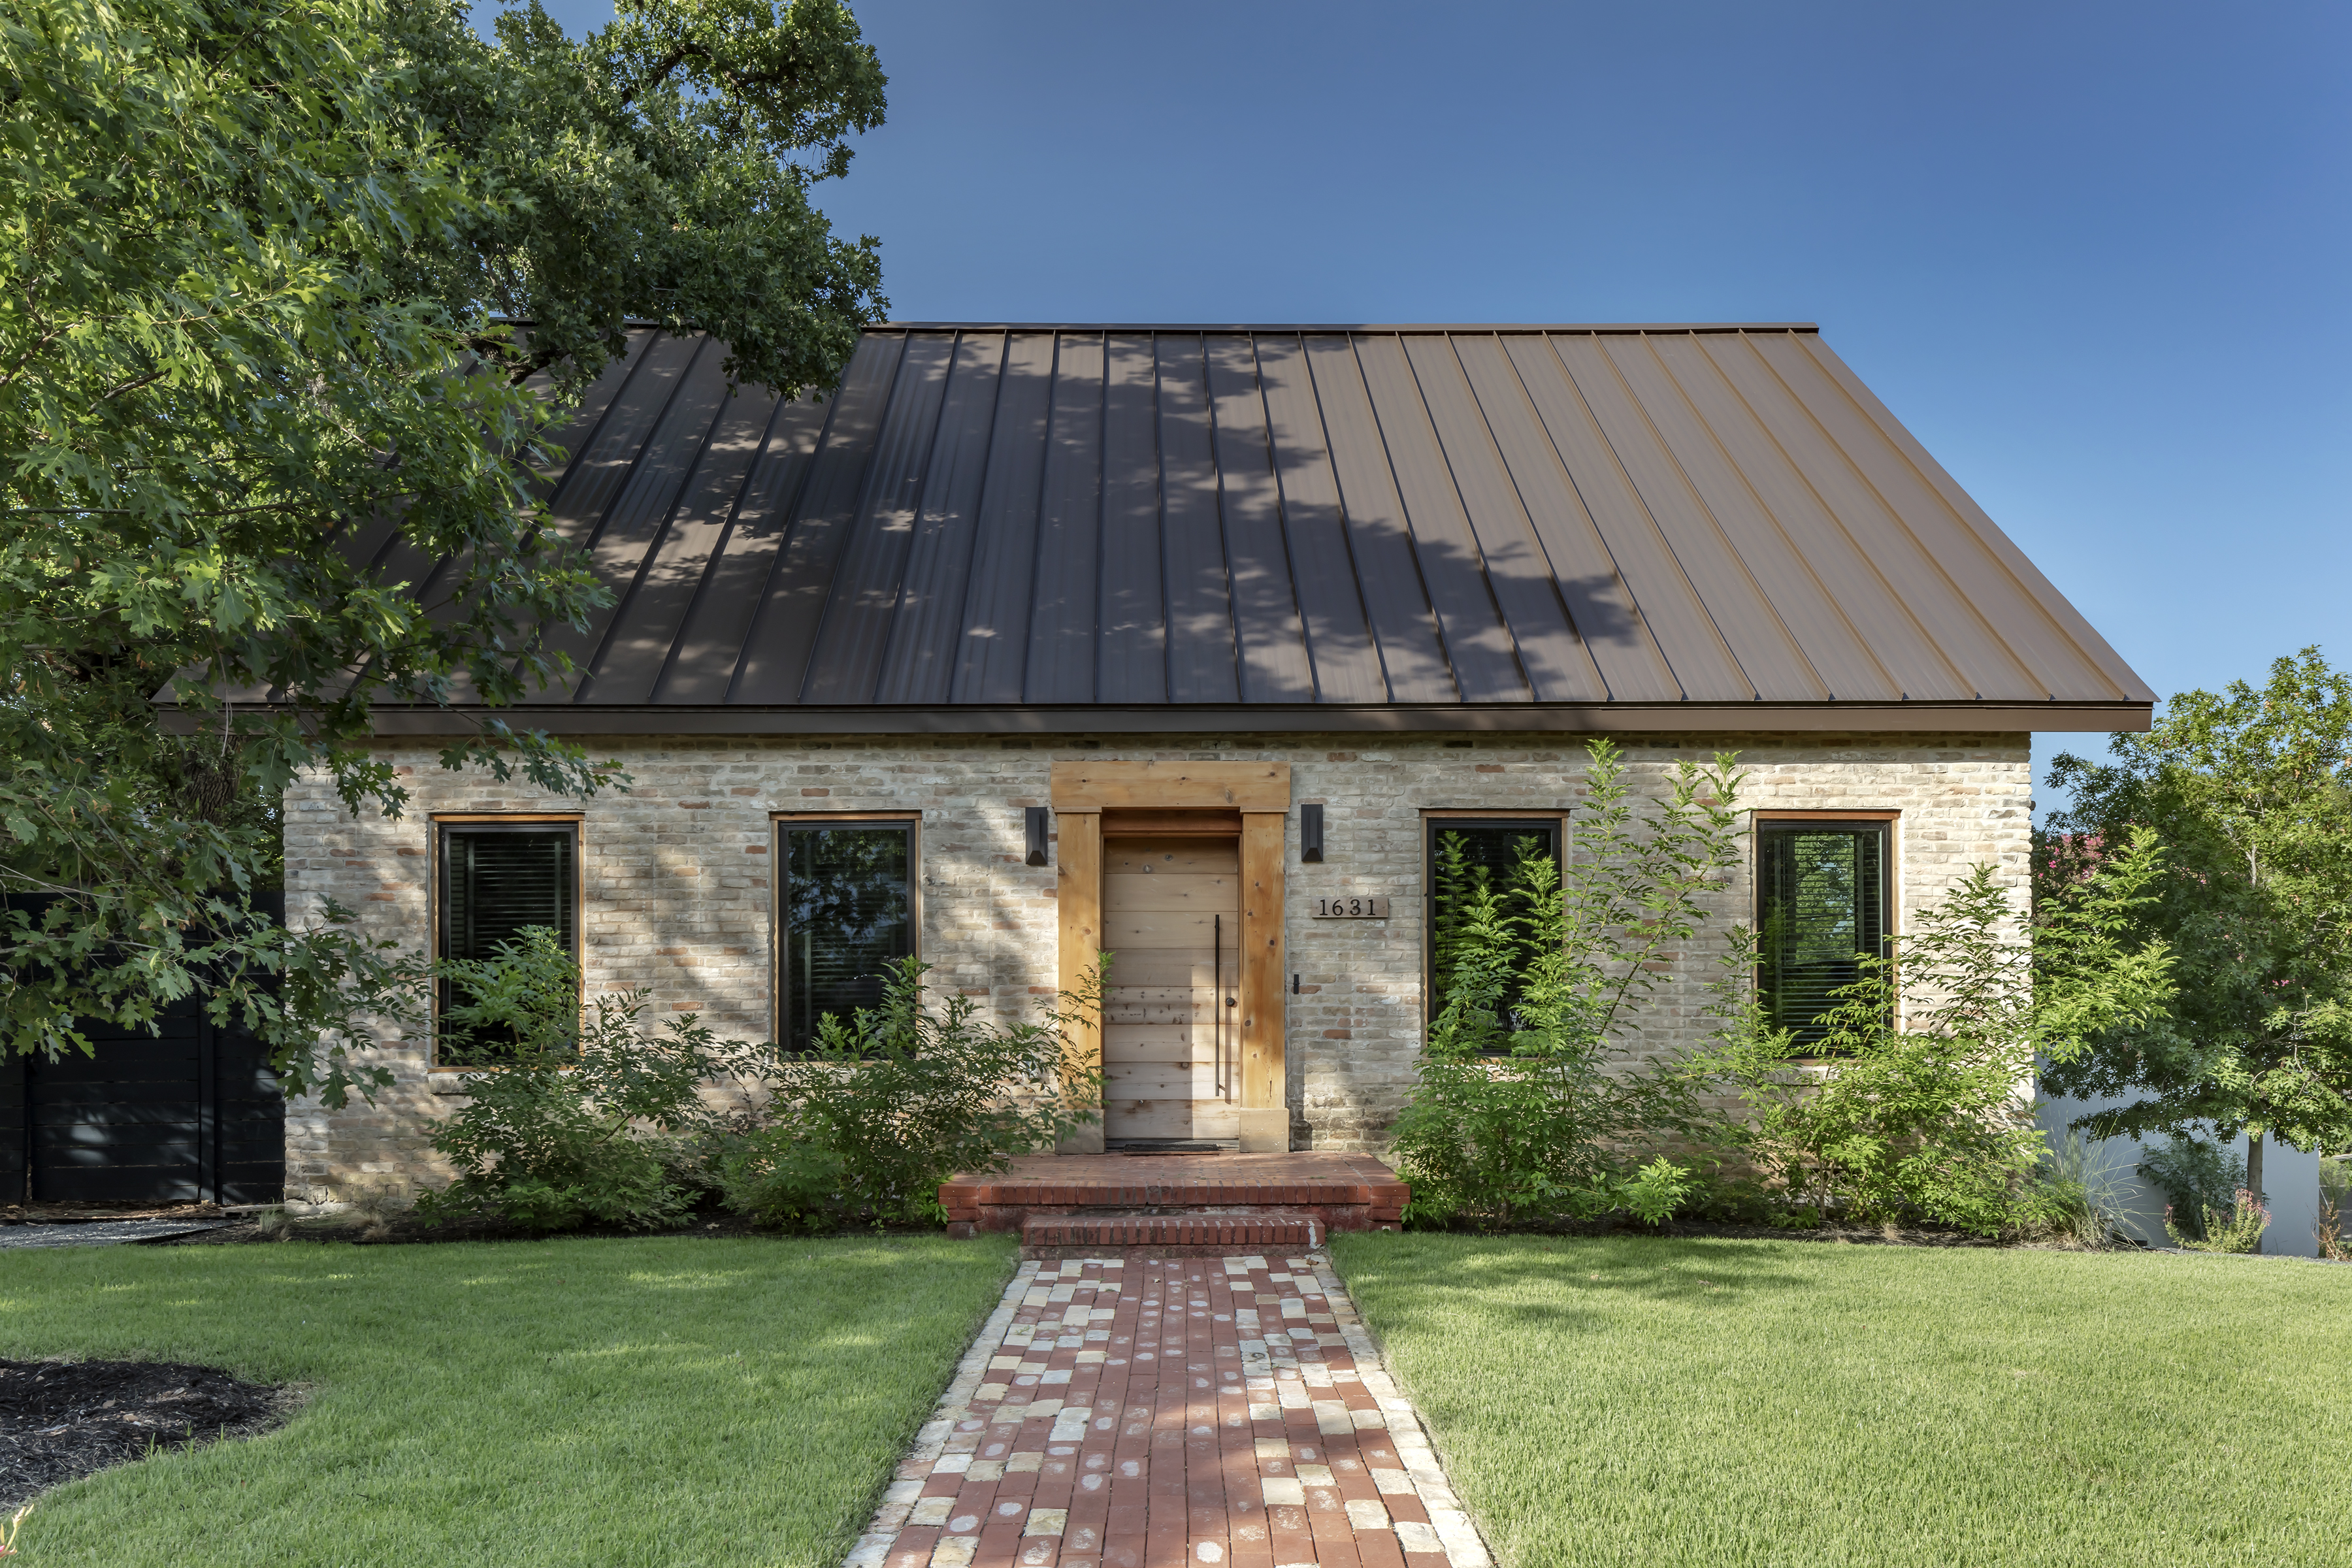 one-story 1938 stone home with new metal roof